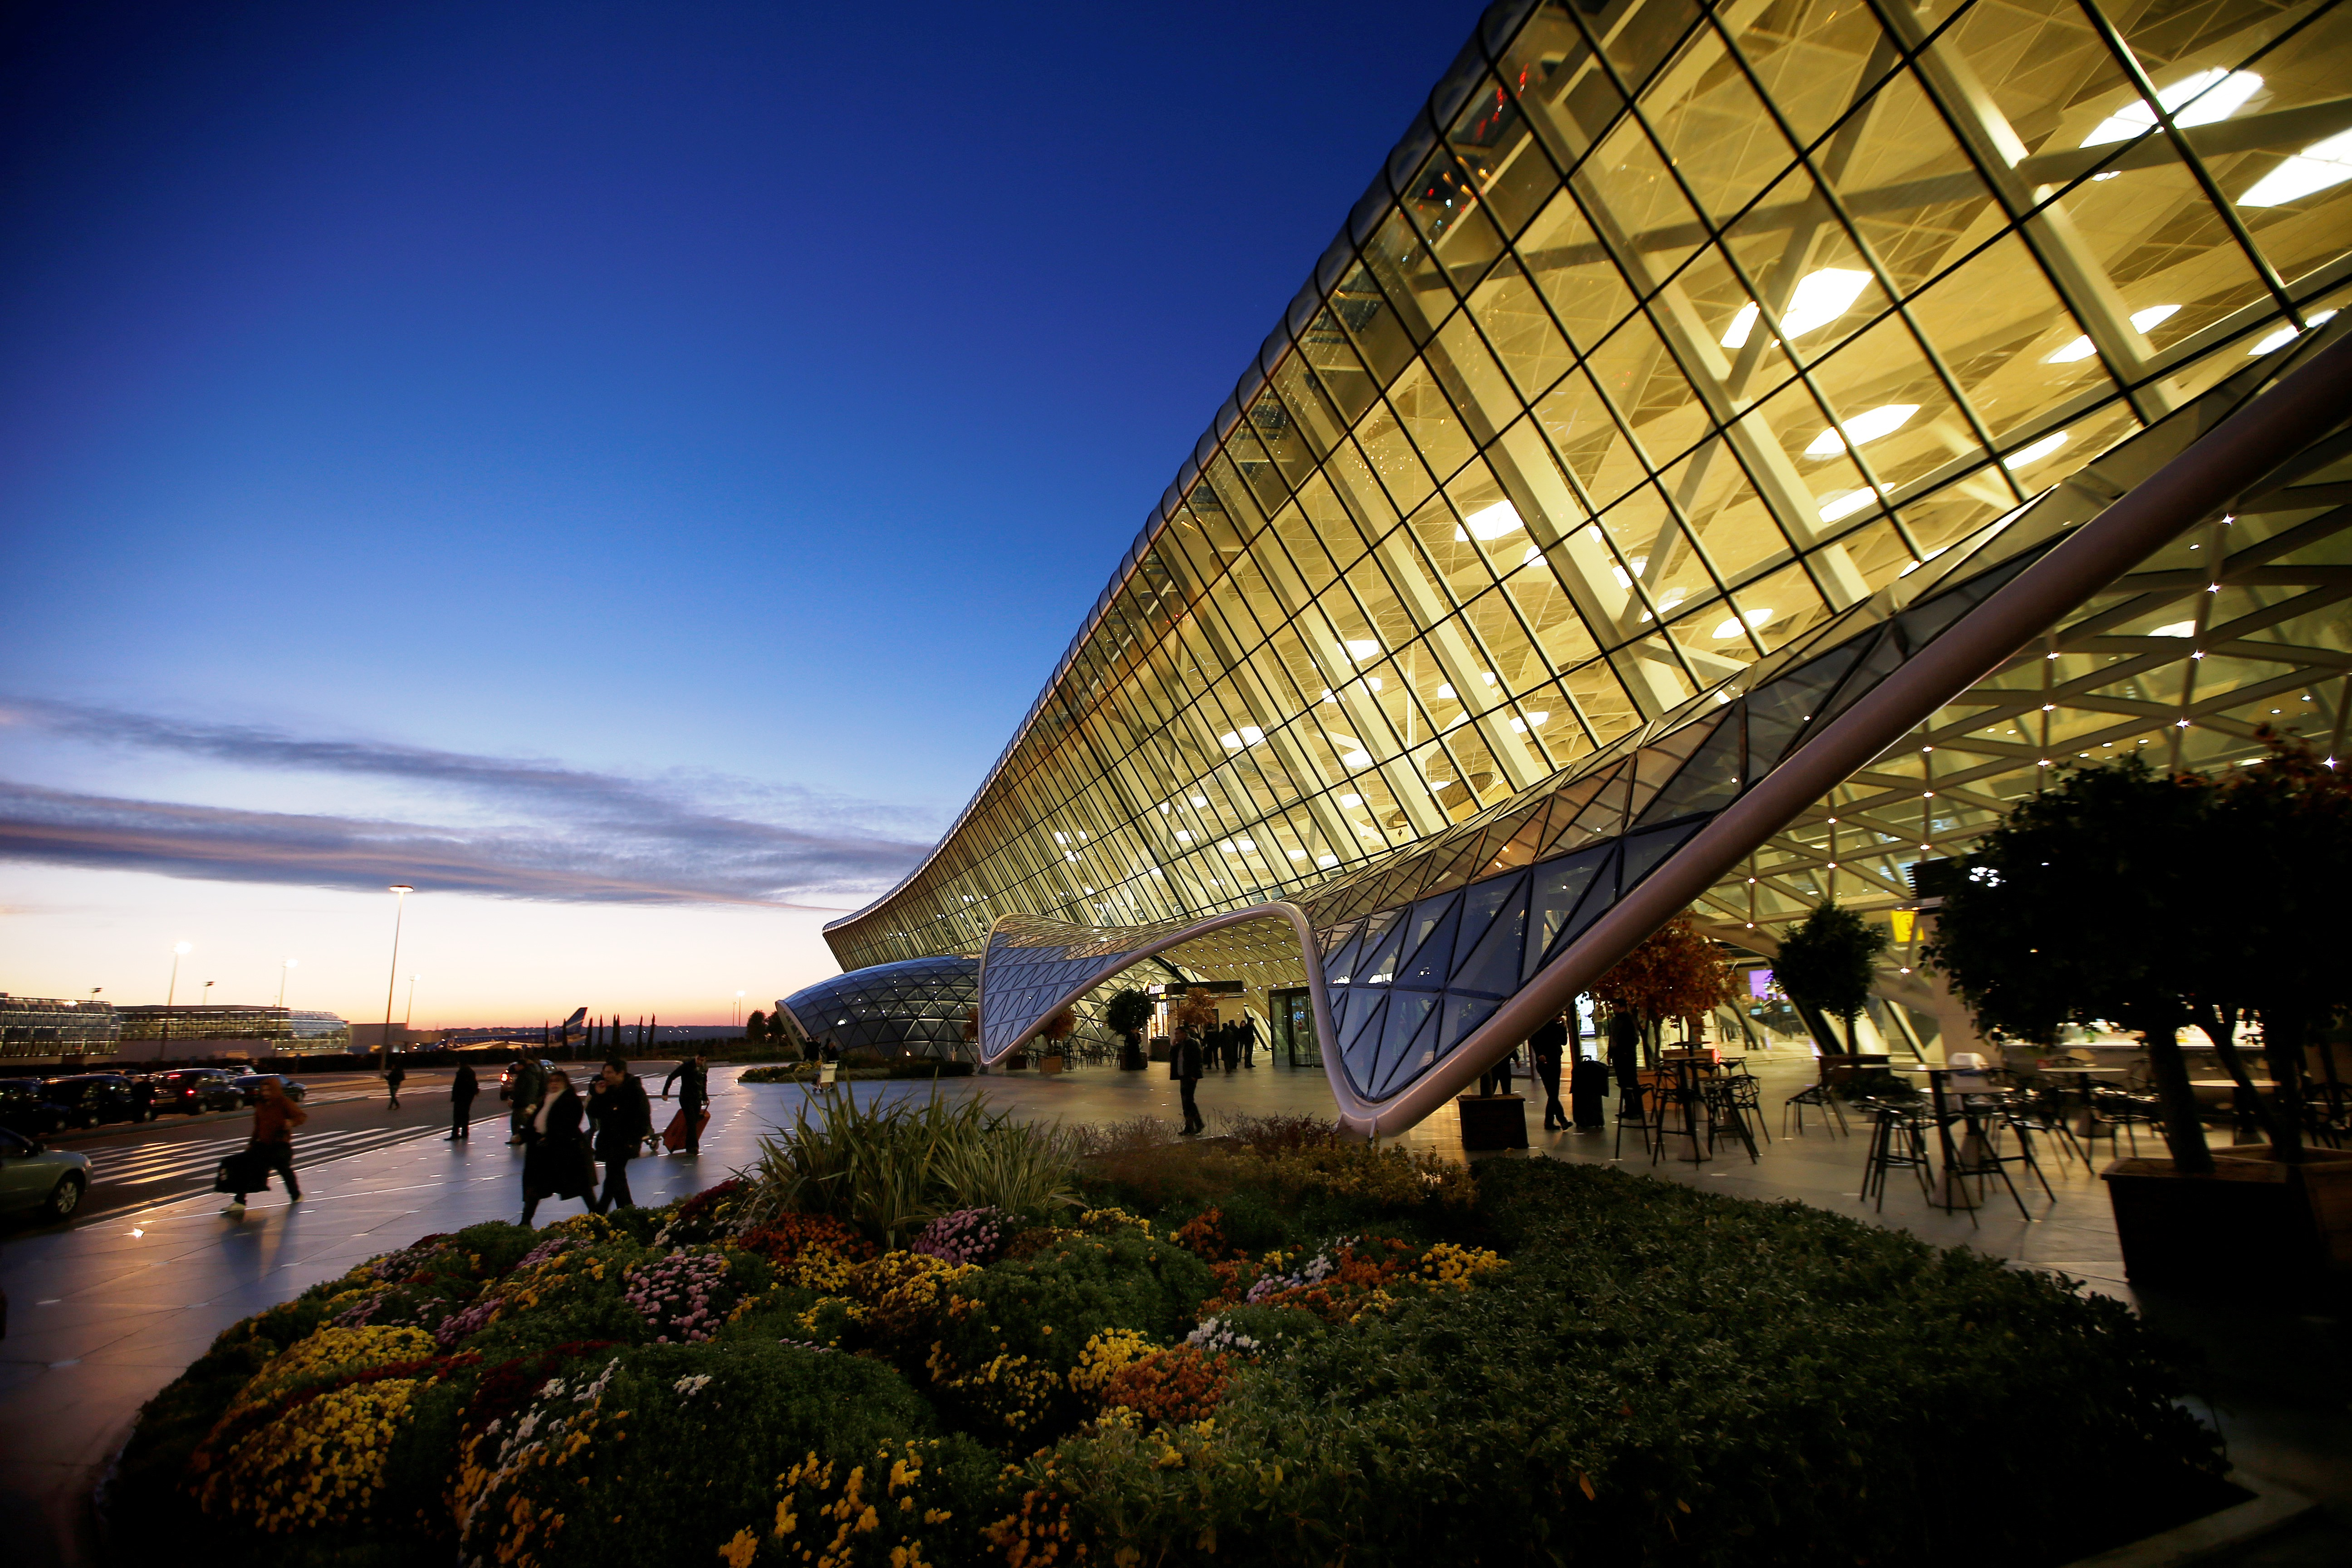 Heydar aliyev international airport for International azerbaijan decor expo